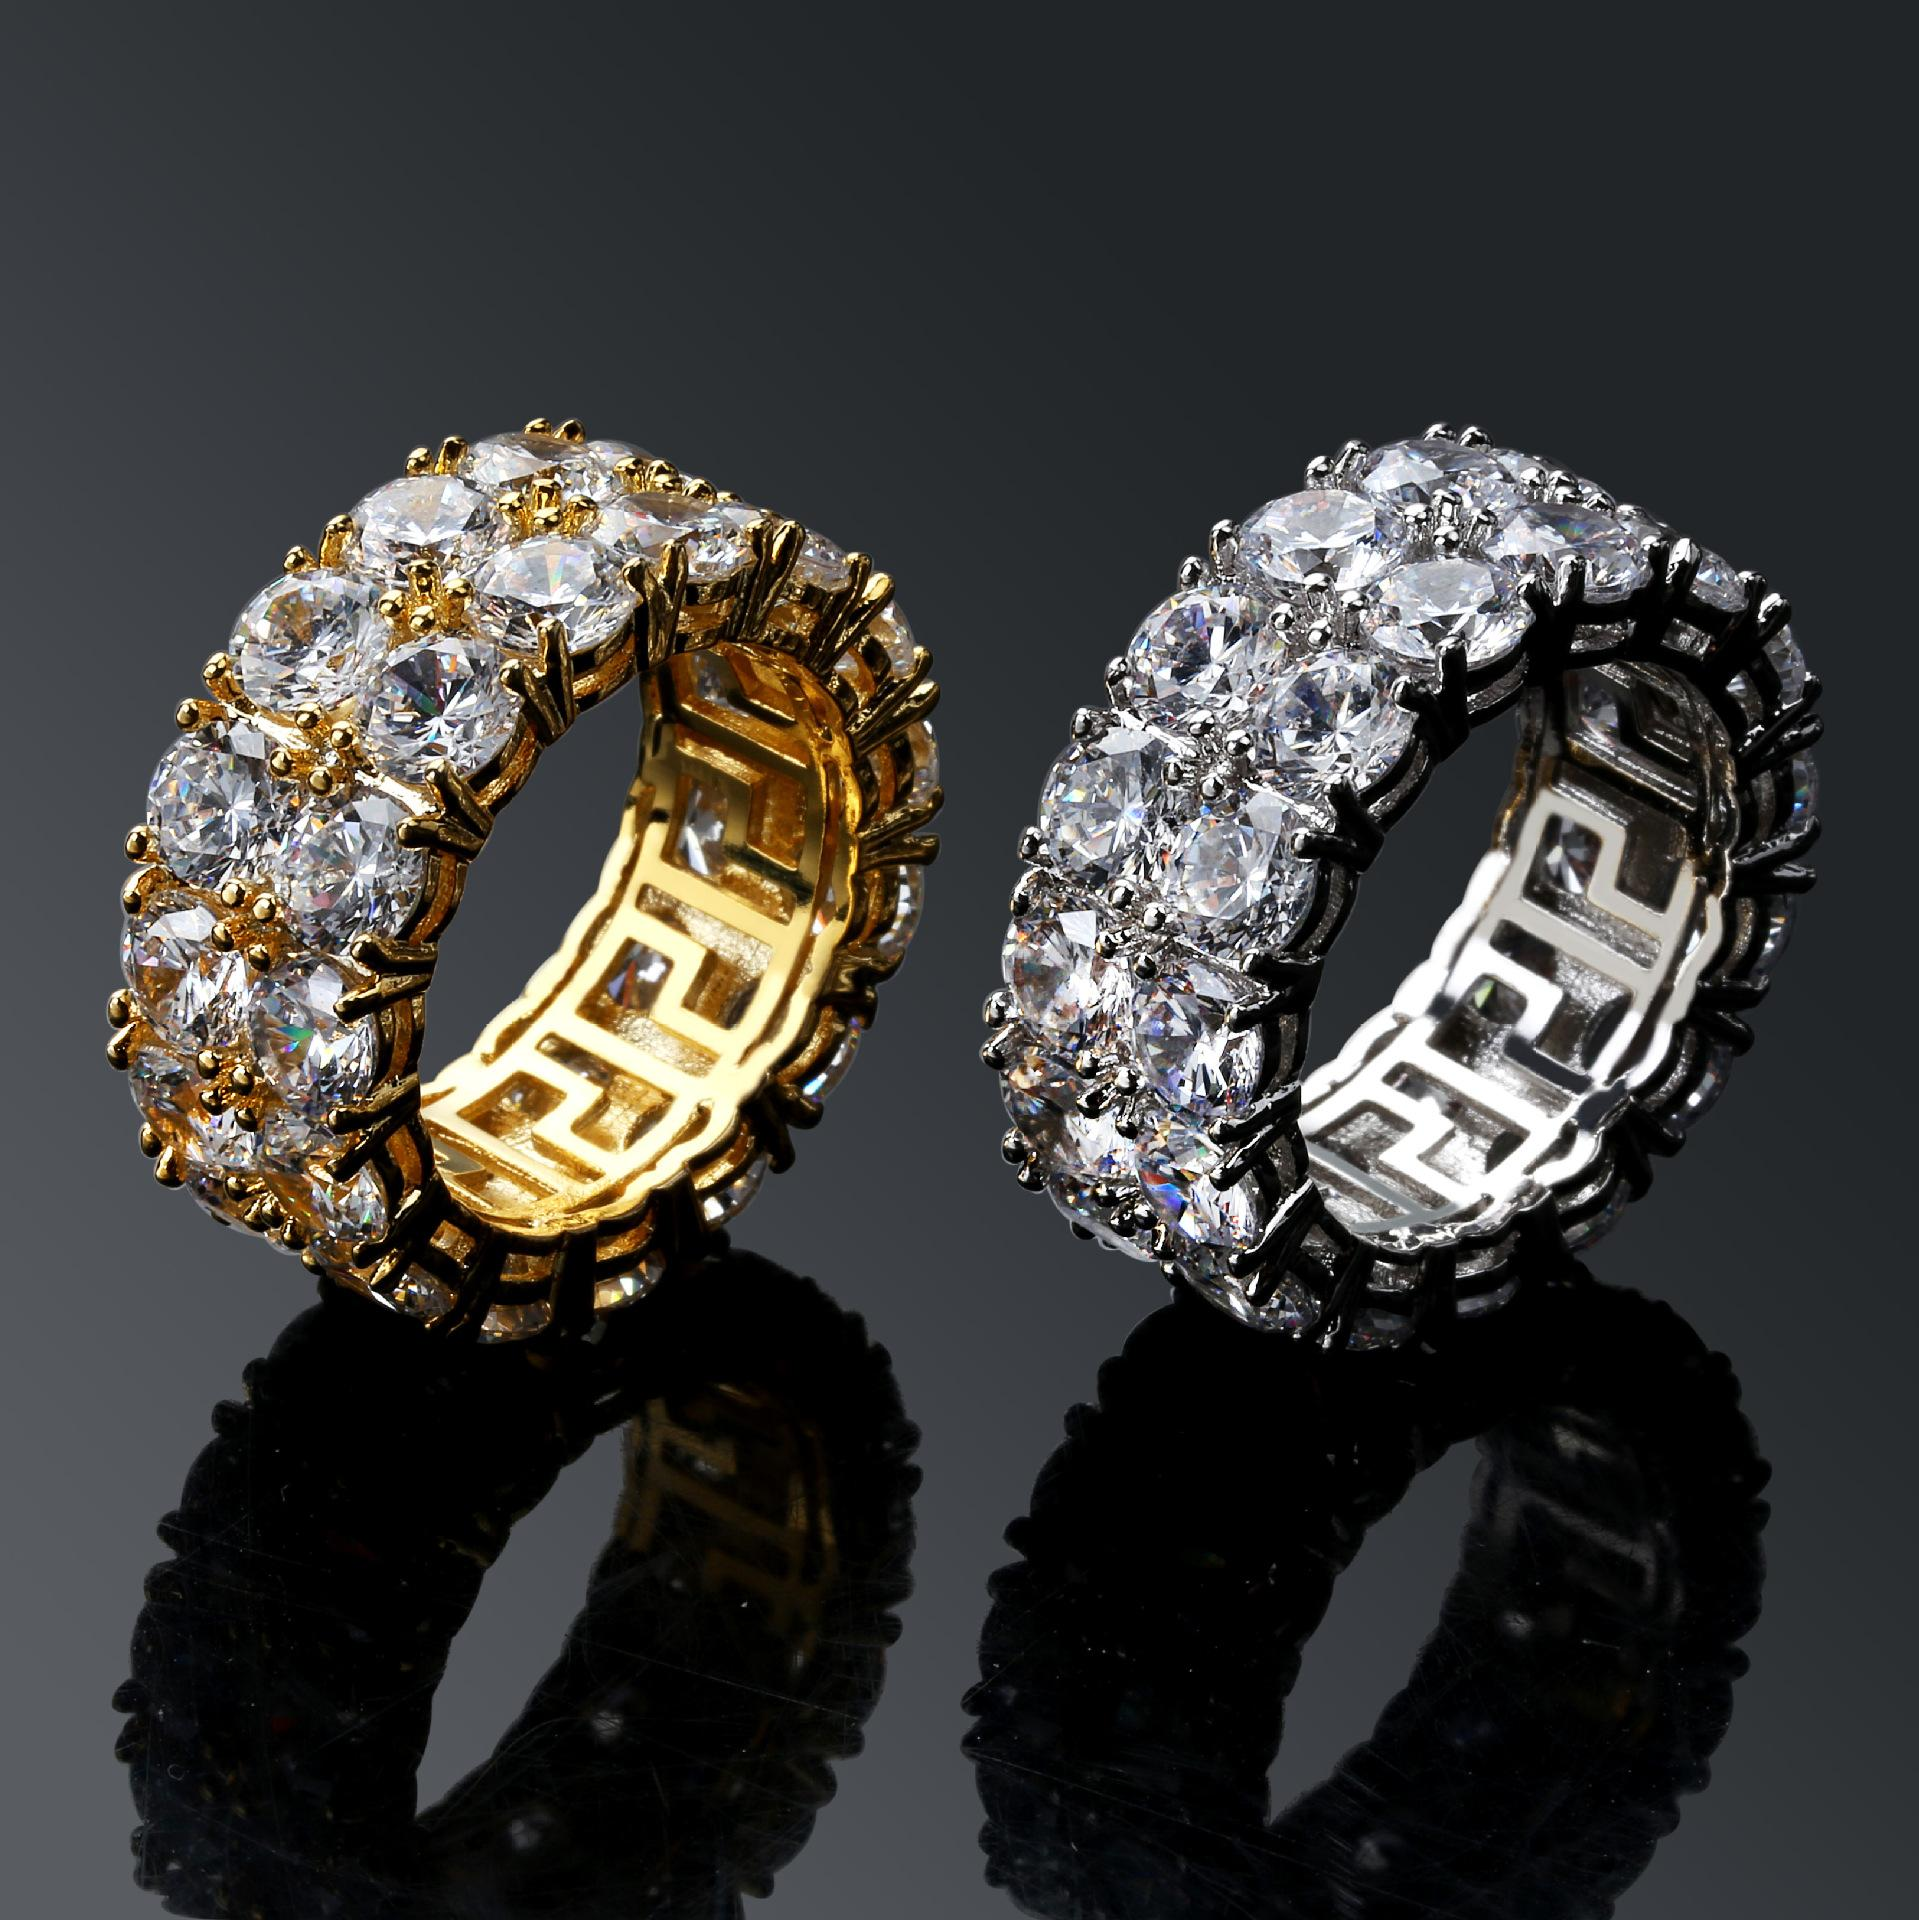 New Hip-hop Ring 18k Gold Plated Men's Large Zircon Ring Diamond Rings Double Row Gemstone Rings